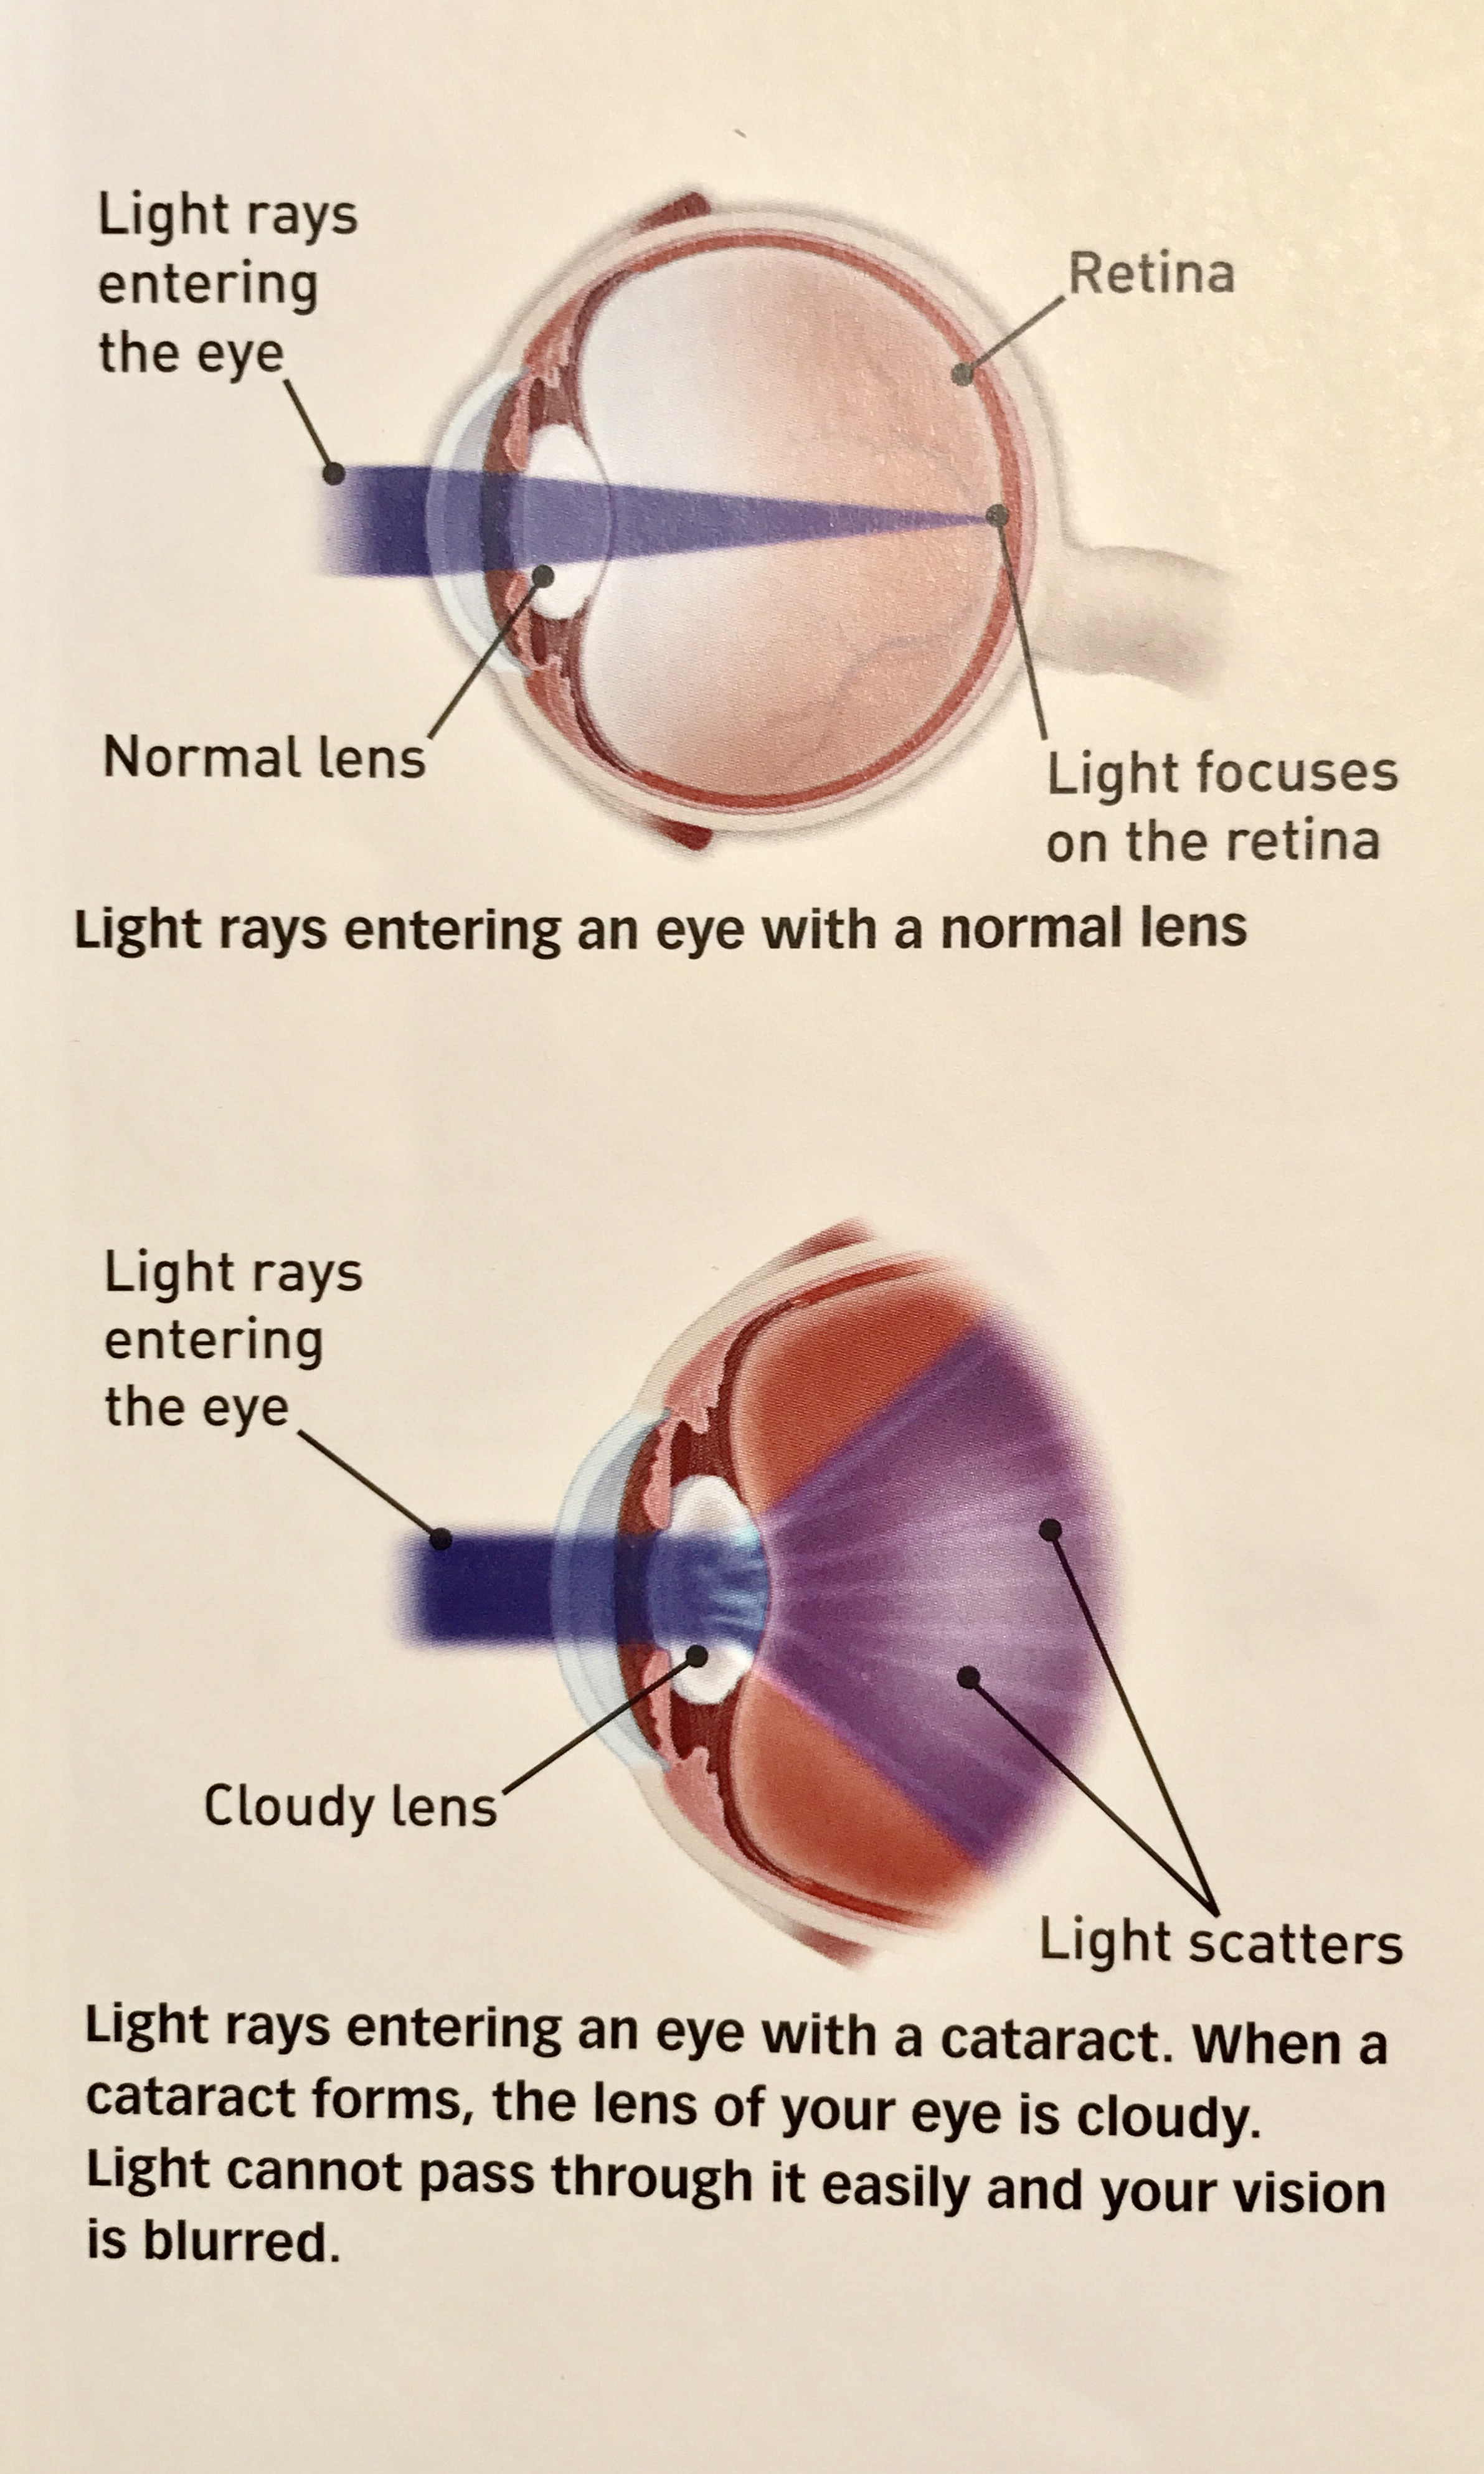 Credit: American Academy of Ophthalmology